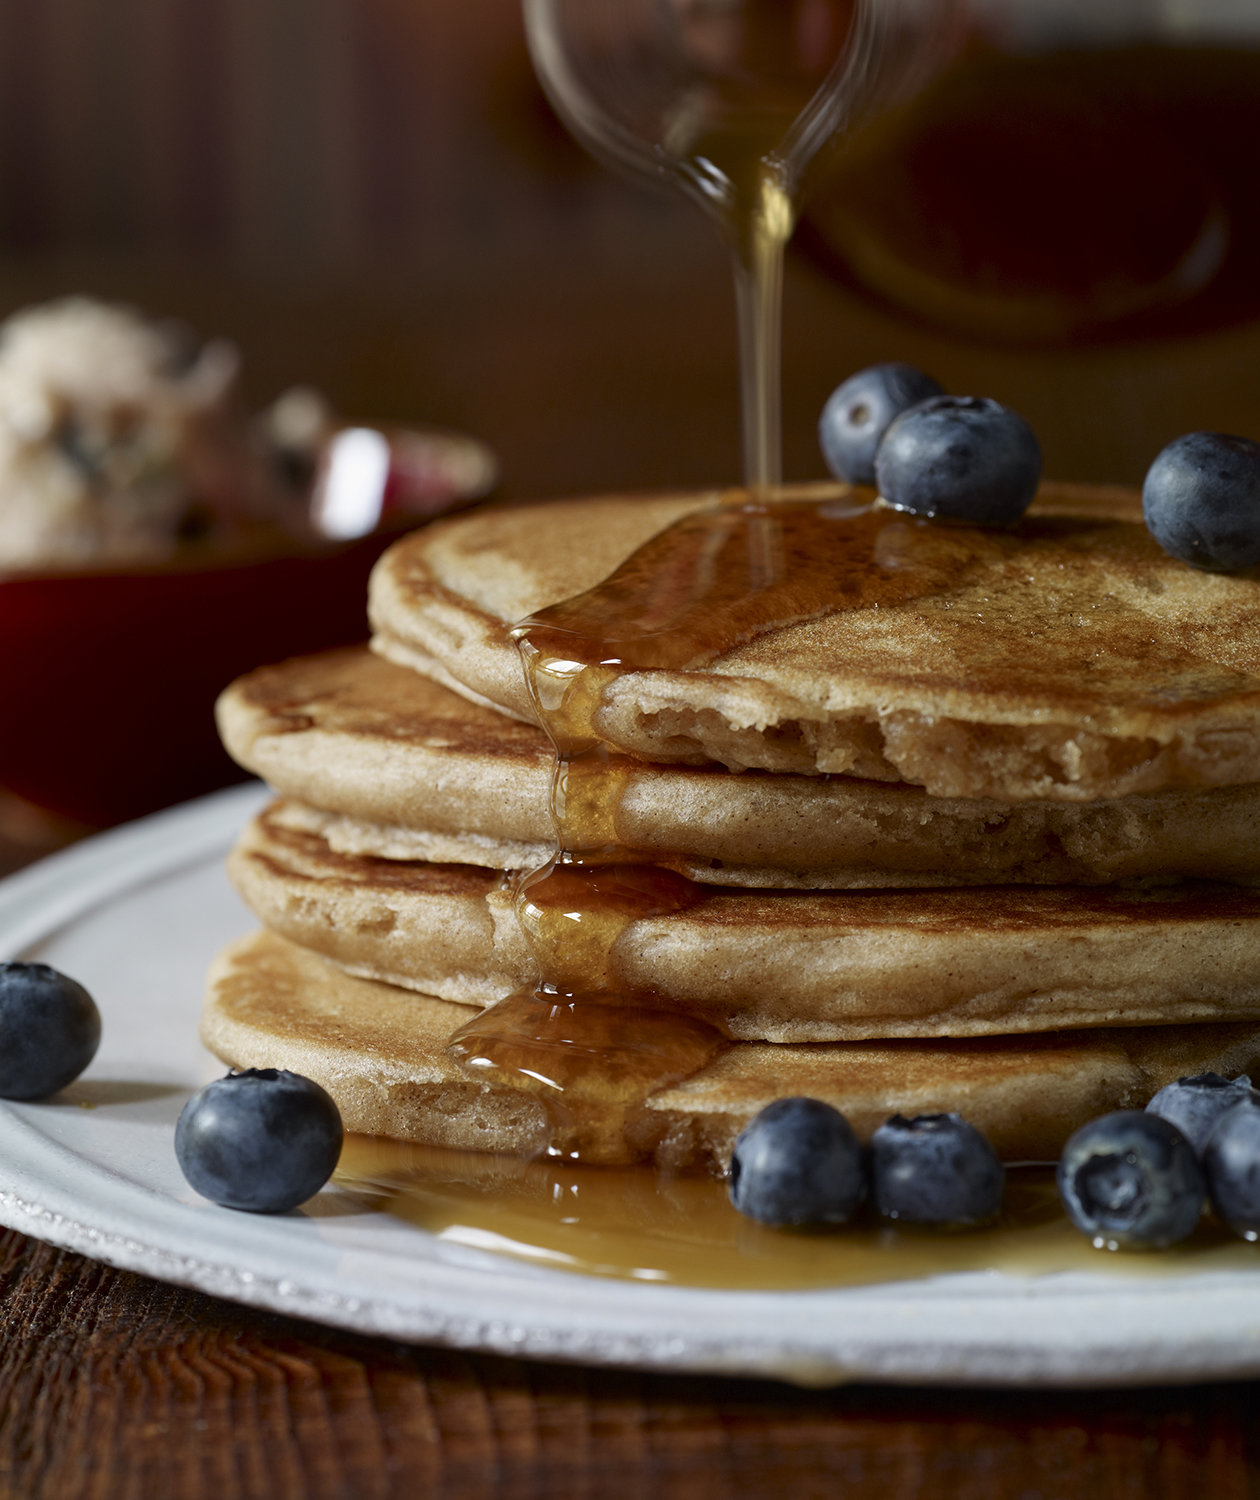 How Many Pancakes Are in a Short Stack?